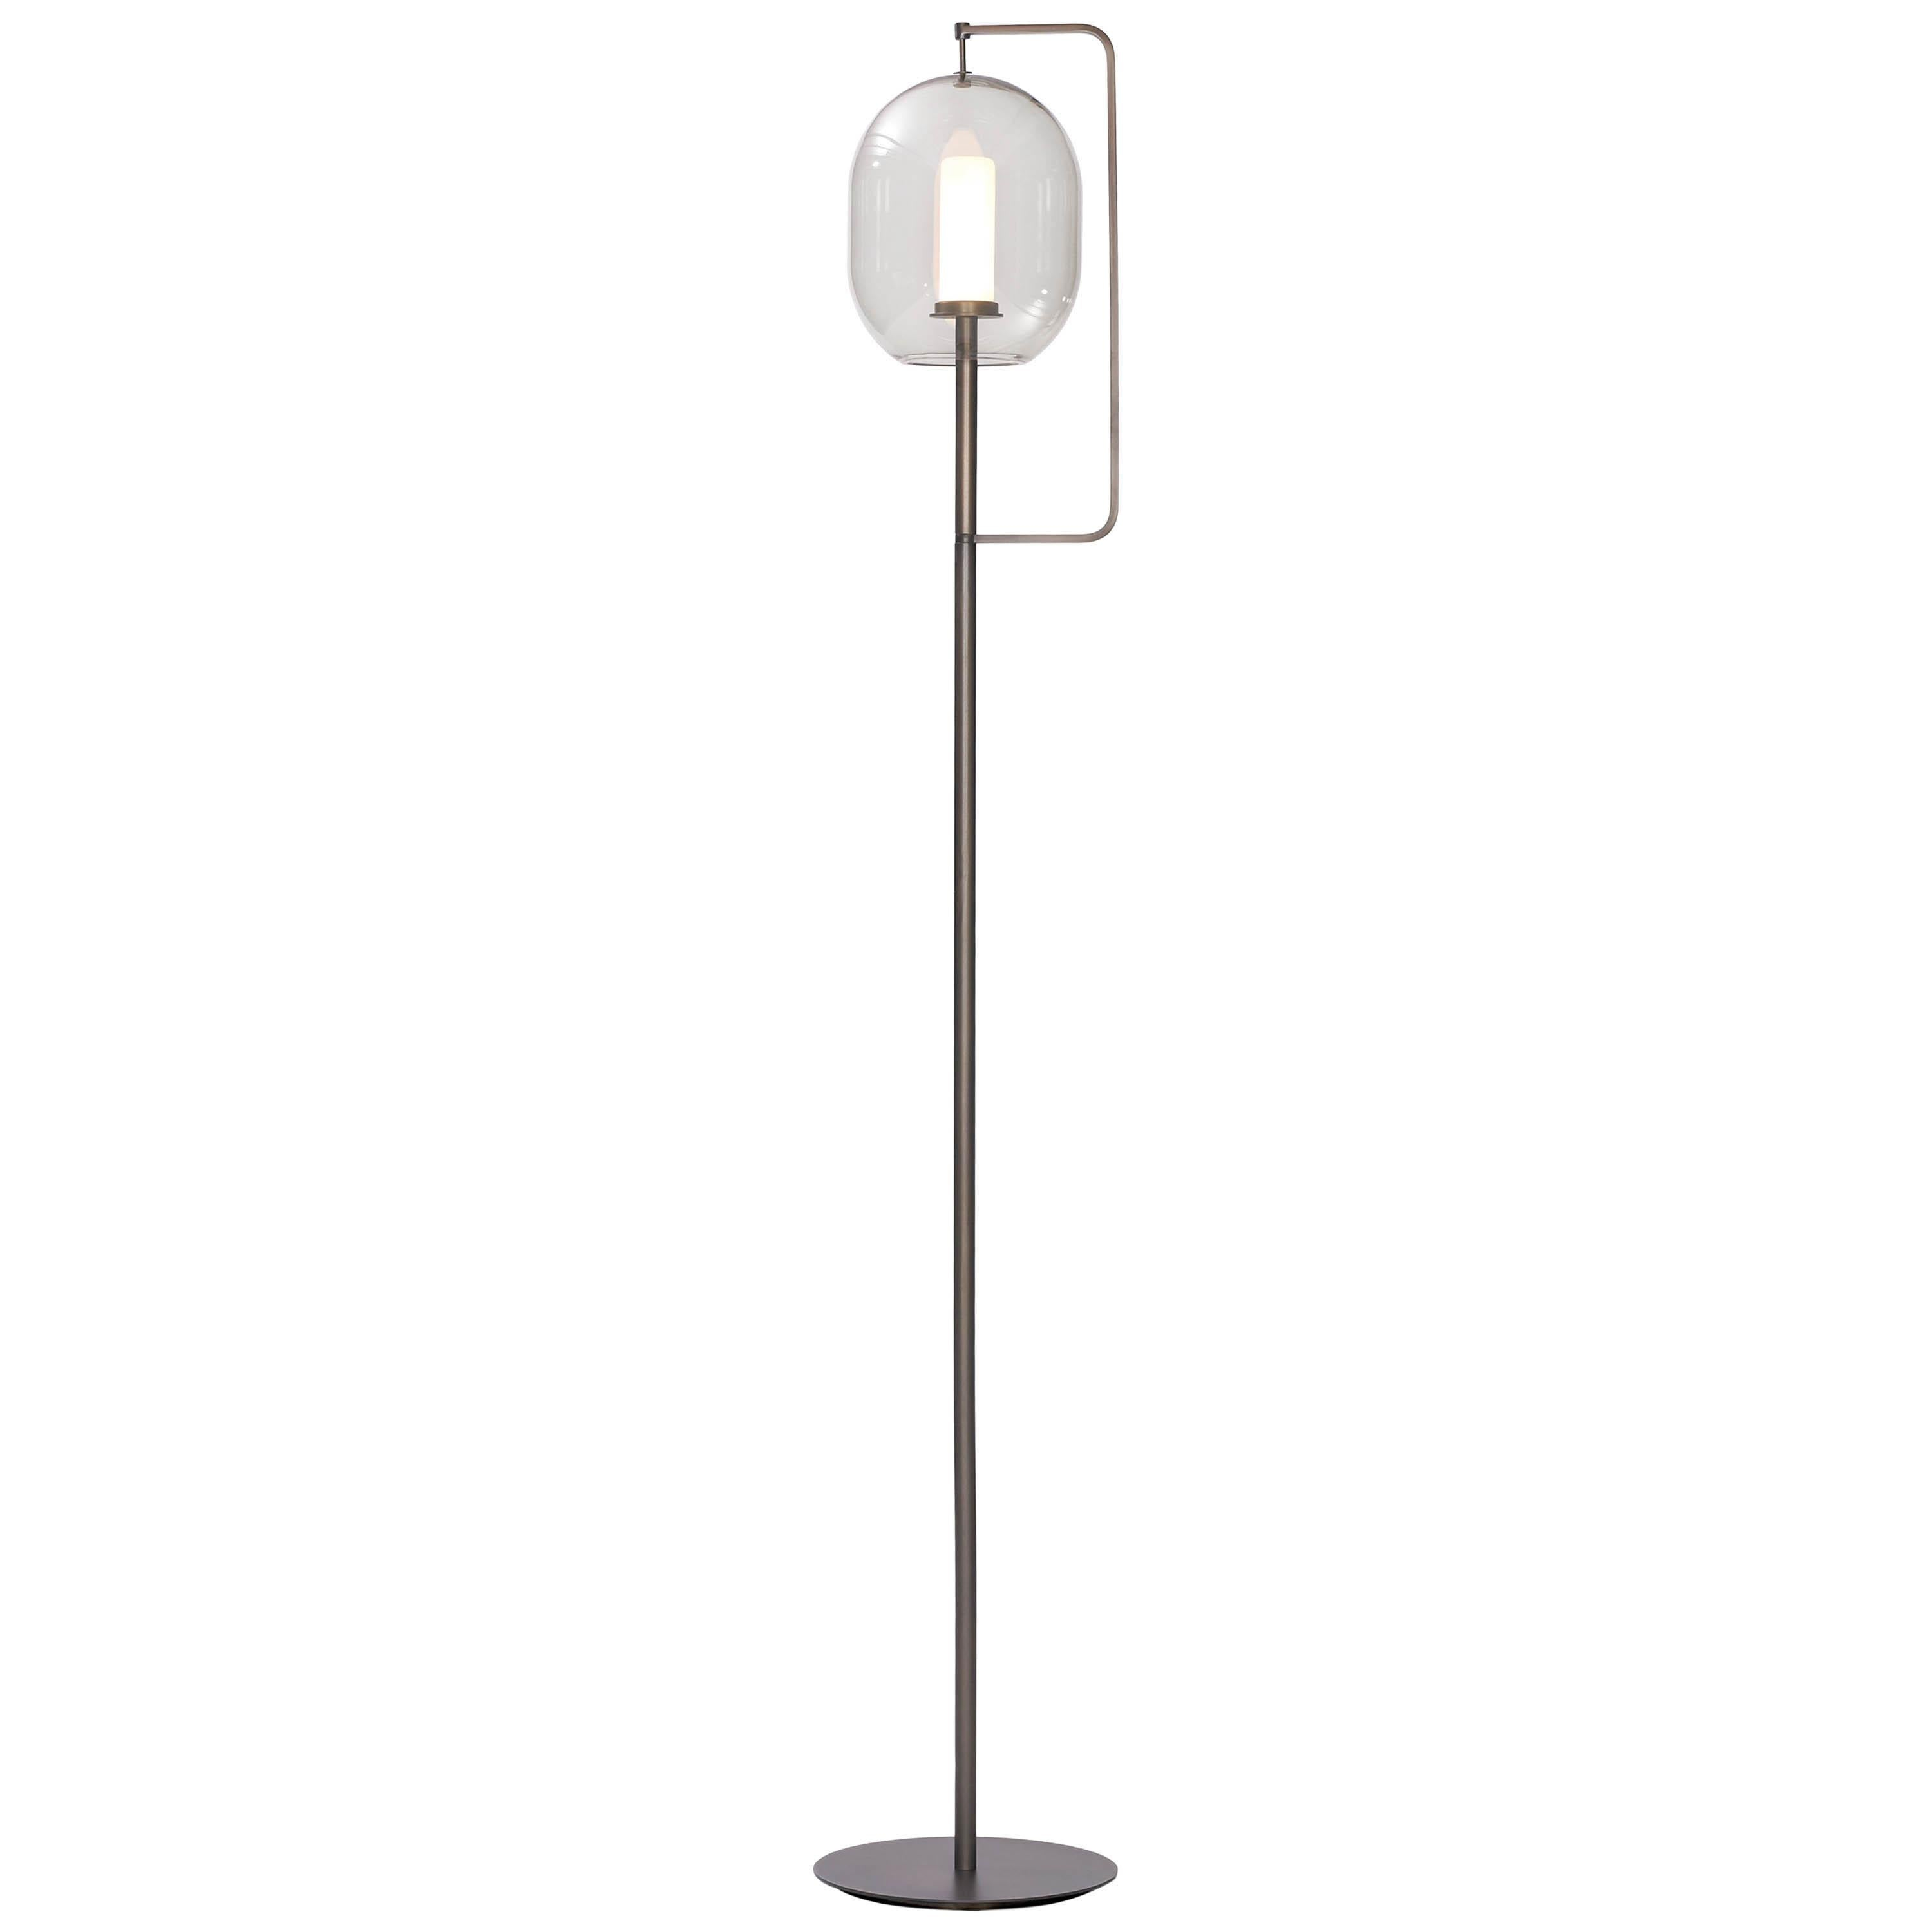 ClassiCon Lantern Light Tall Floor Lamp in Burnished Brass by Neri&Hu